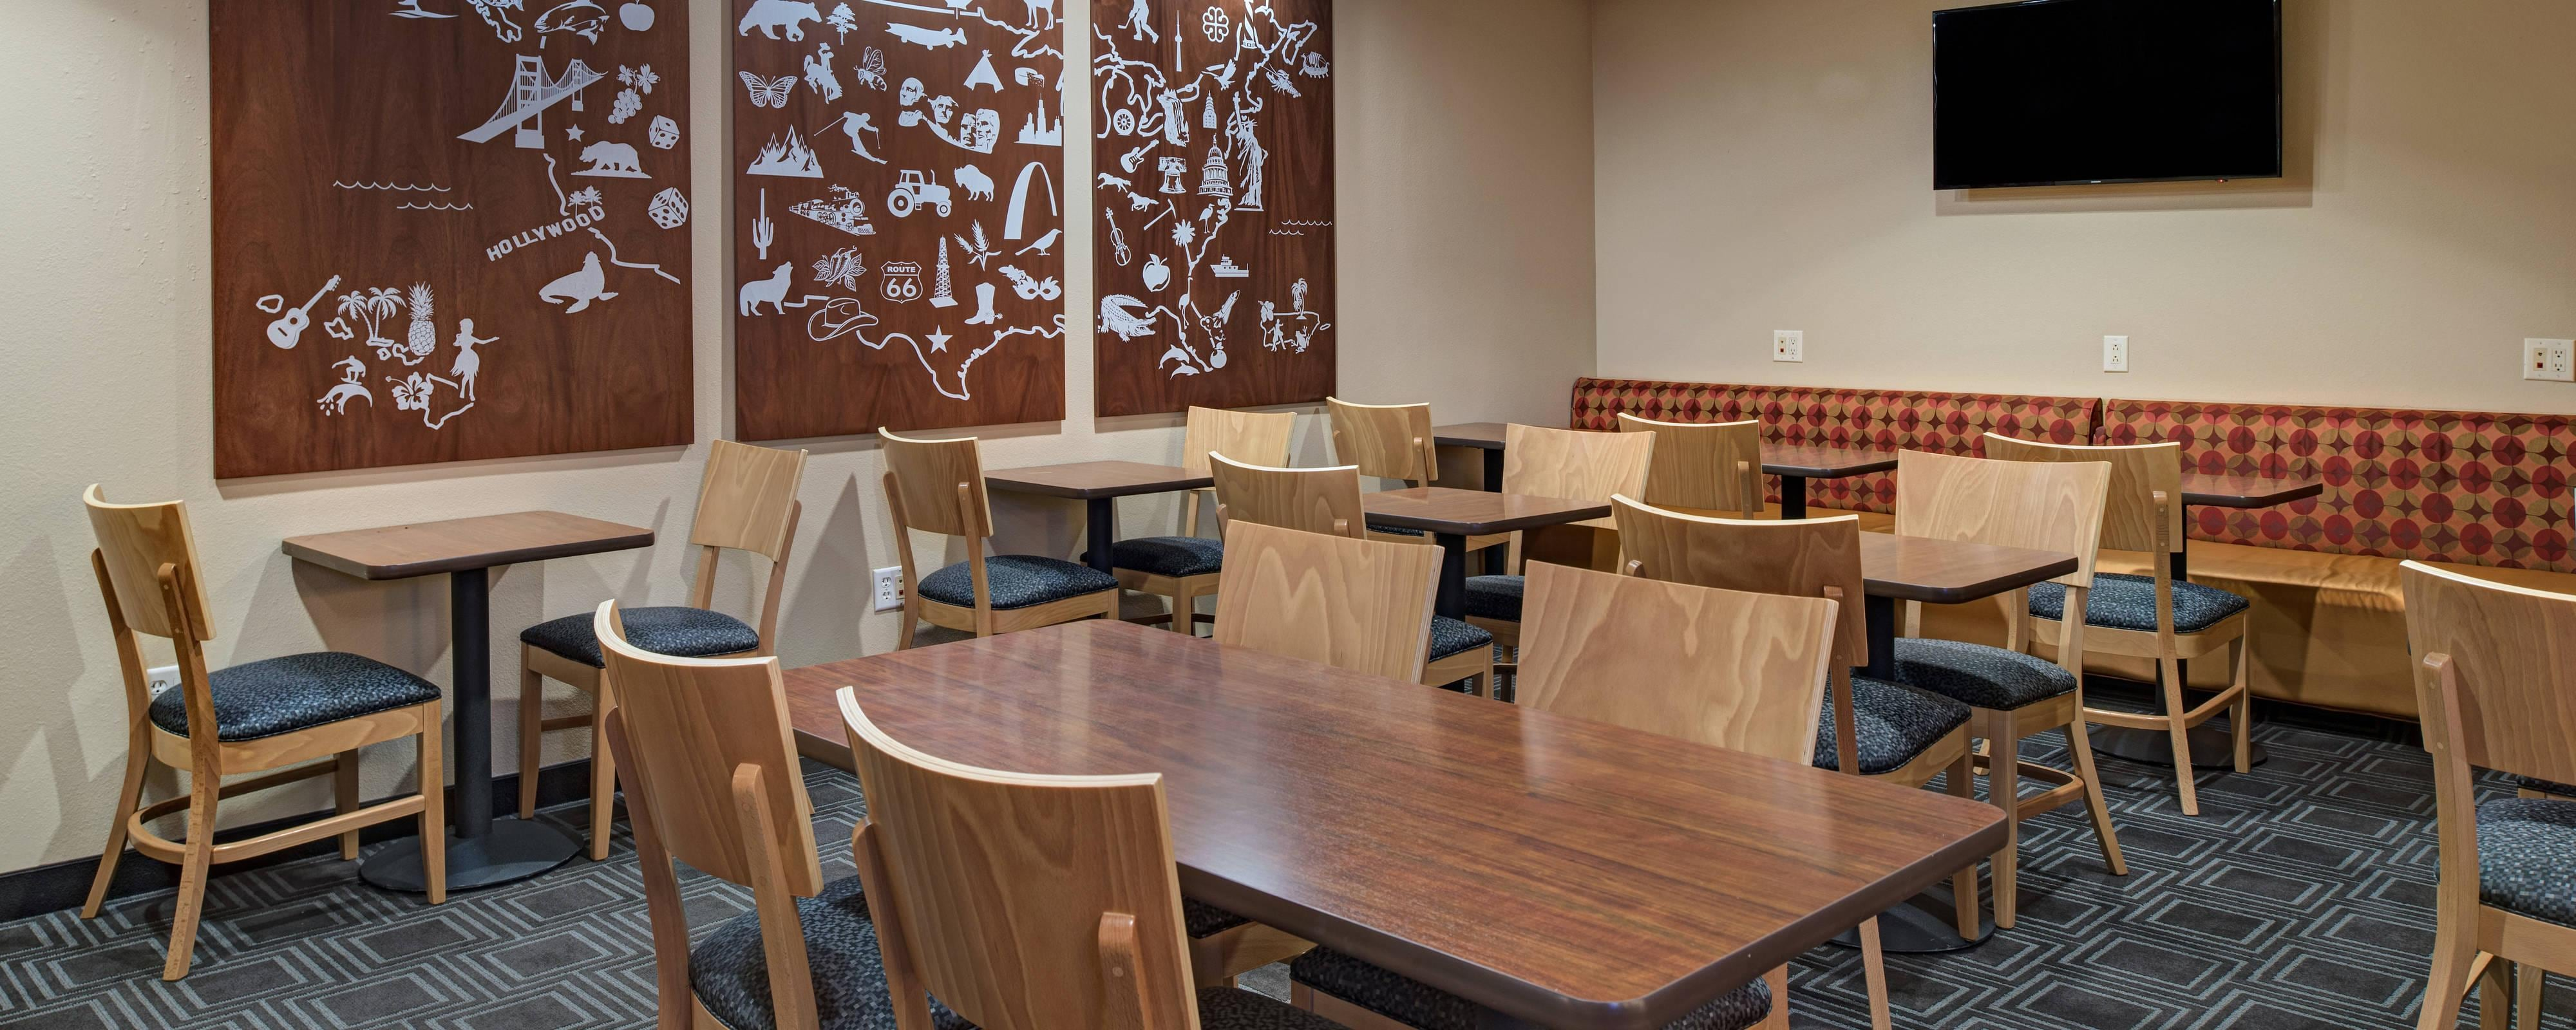 Fayetteville hotel restaurants | TownePlace Suites Fayetteville ...